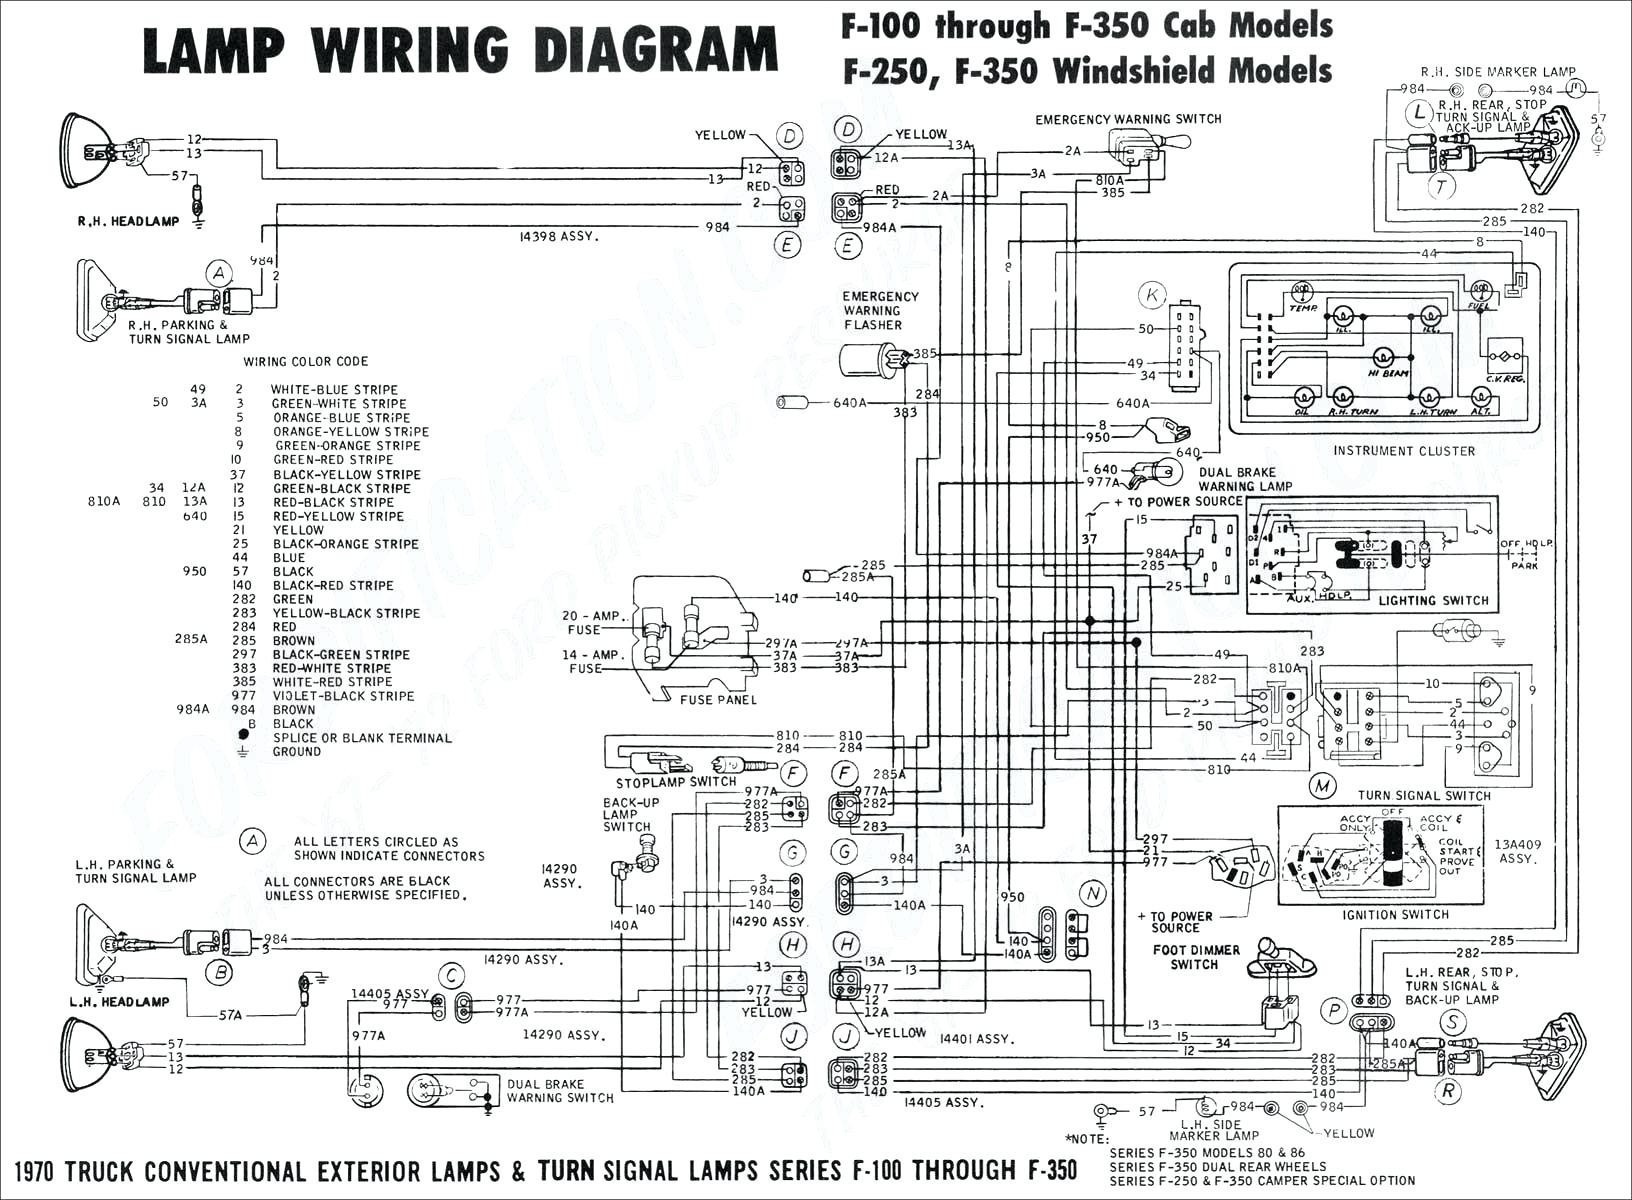 2006 F150 Engine Diagram ford F150 Engine Diagram Another Blog About Wiring Diagram • Of 2006 F150 Engine Diagram Got A 5 4l V8 5 Star Tuning